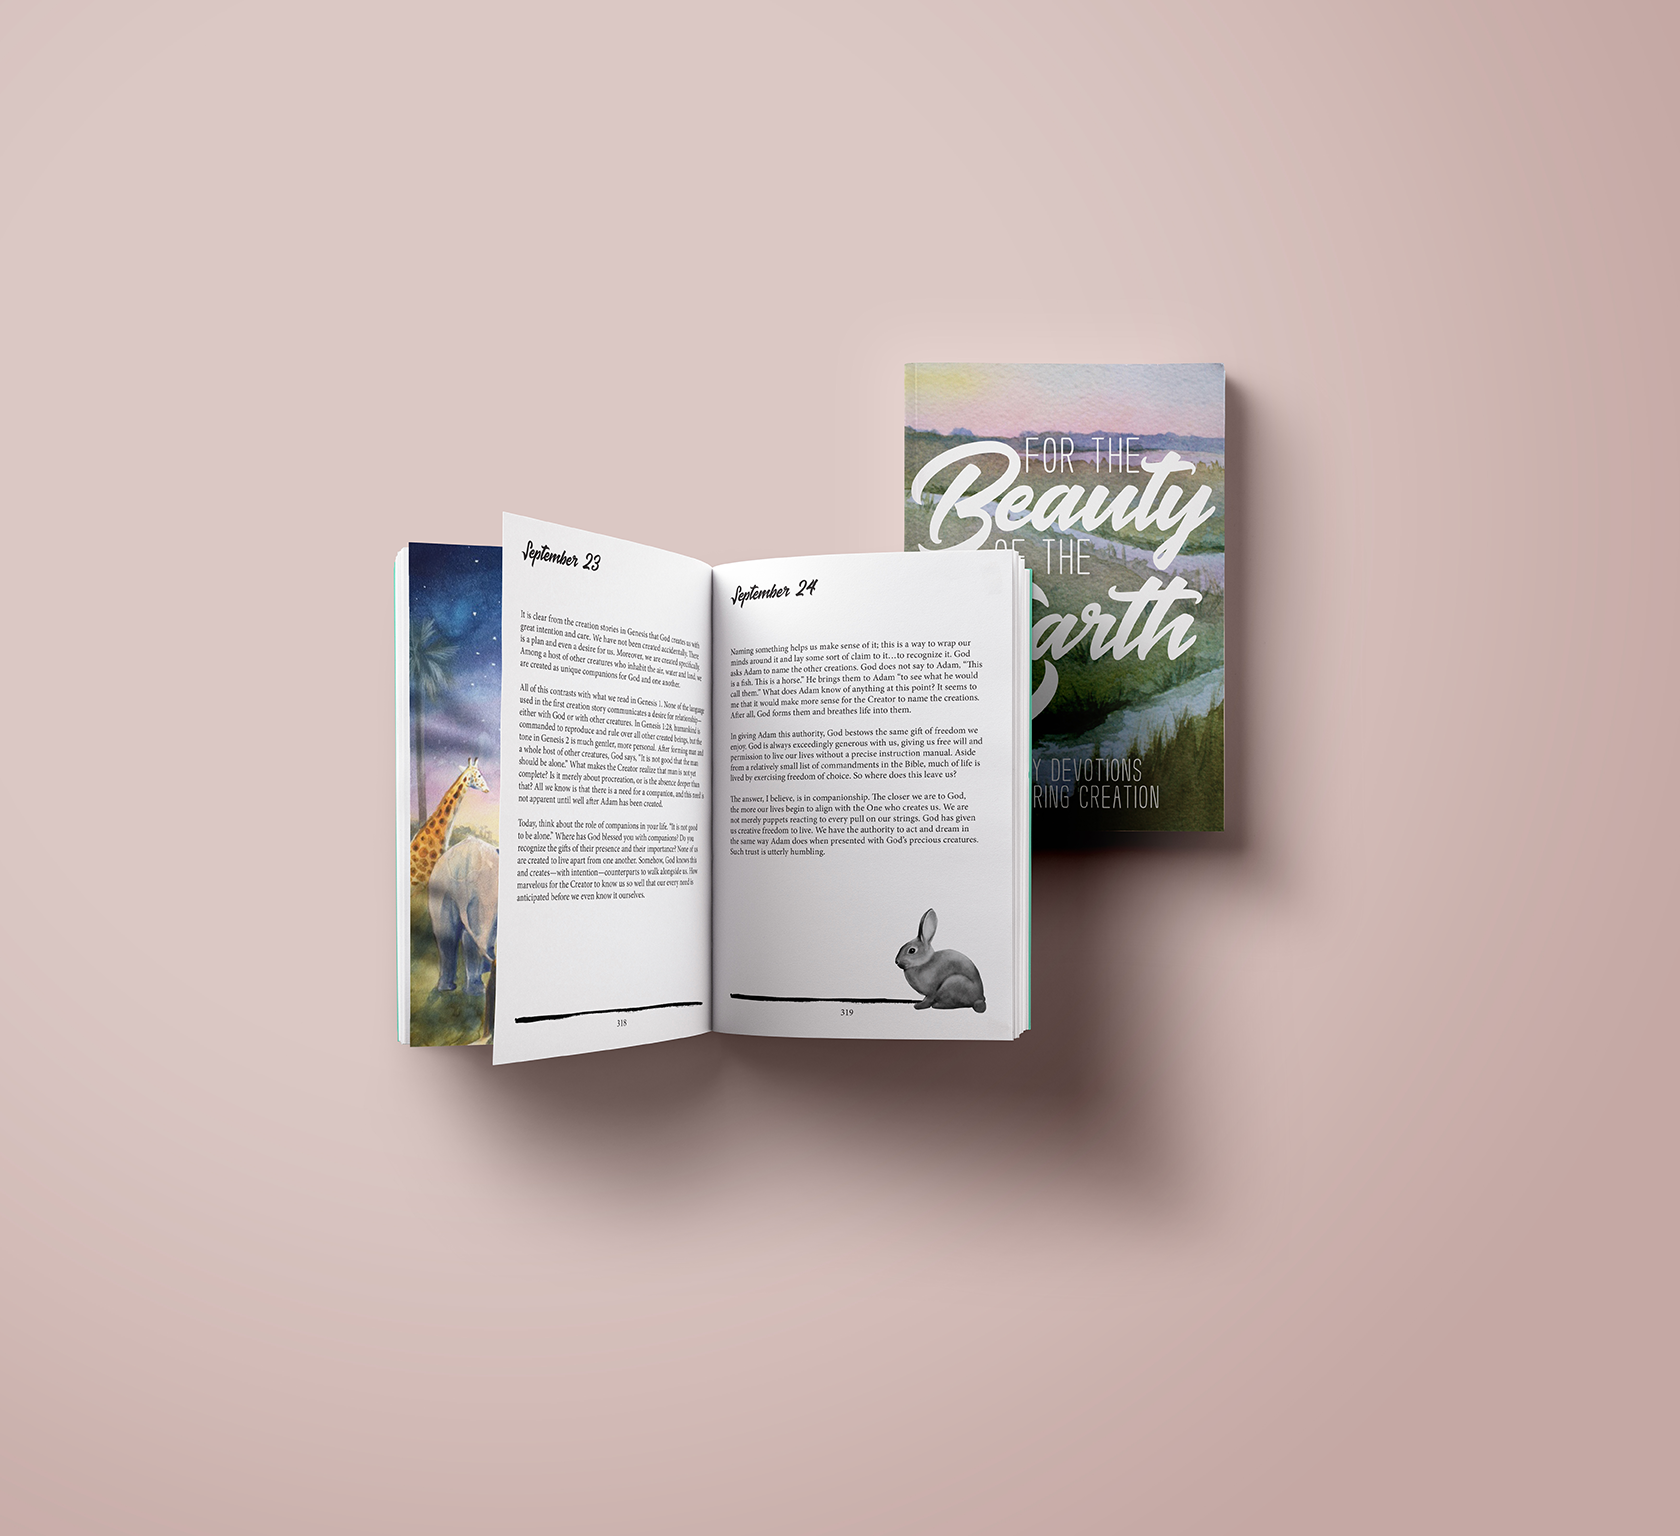 For the Beauty of the Earth Book Cover Design, layout